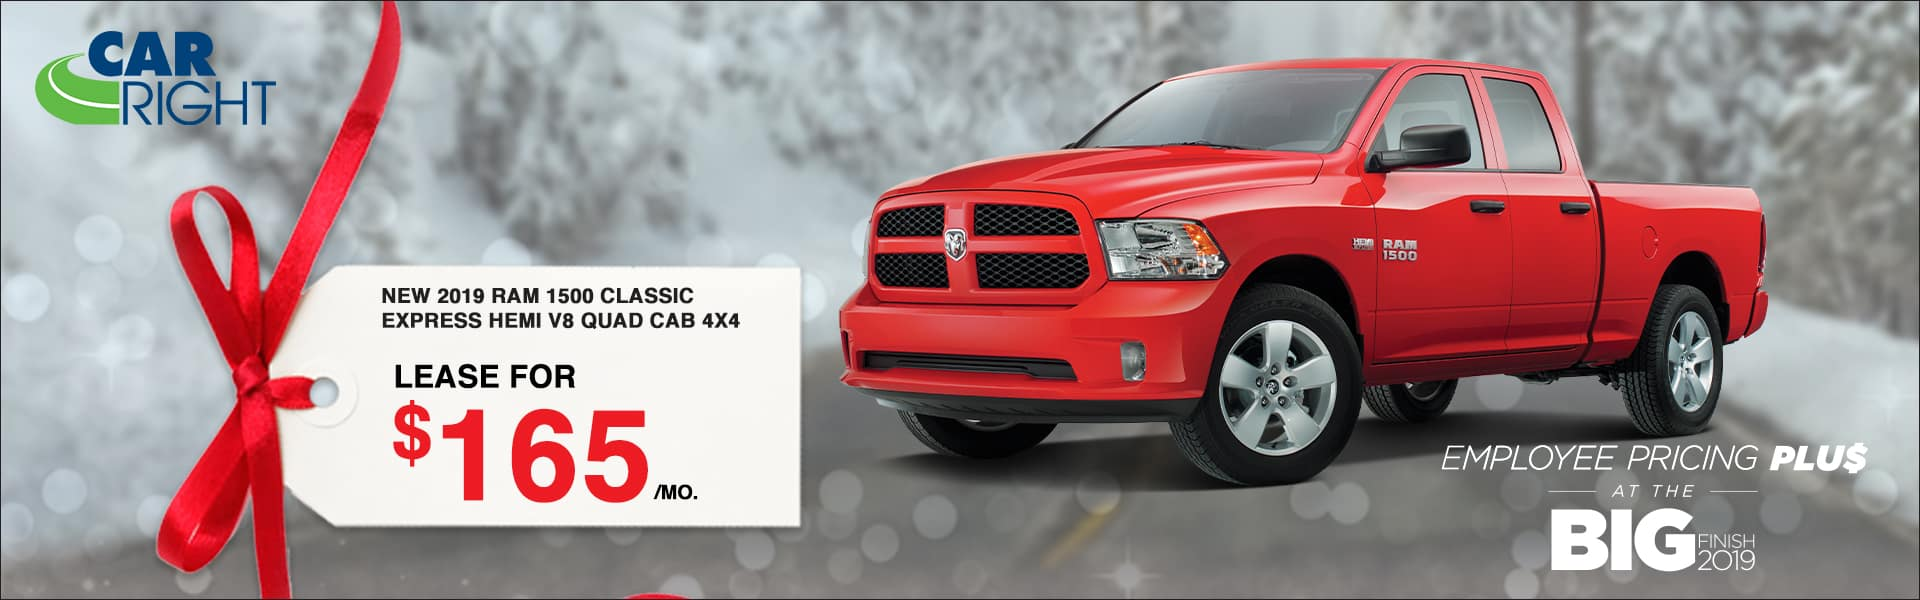 B4219_2019RAM1500CLASSIC Big finish event employee pricing plus Chrysler dodge jeep ram carright moon township diehl automotive lease special buy now savings discount